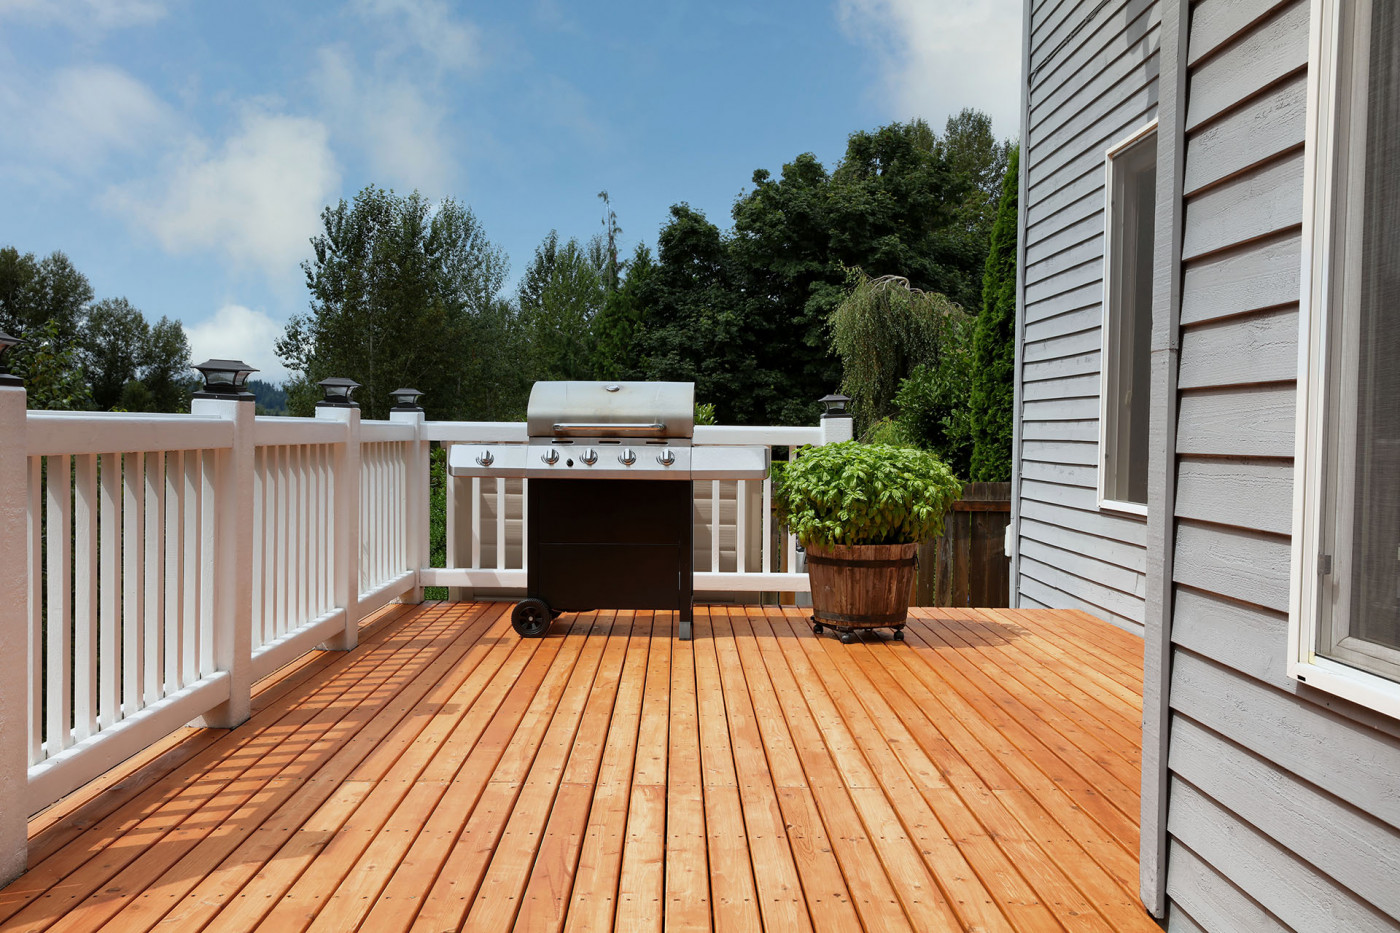 Planning a Deck This Summer? Here's What You Need to Know